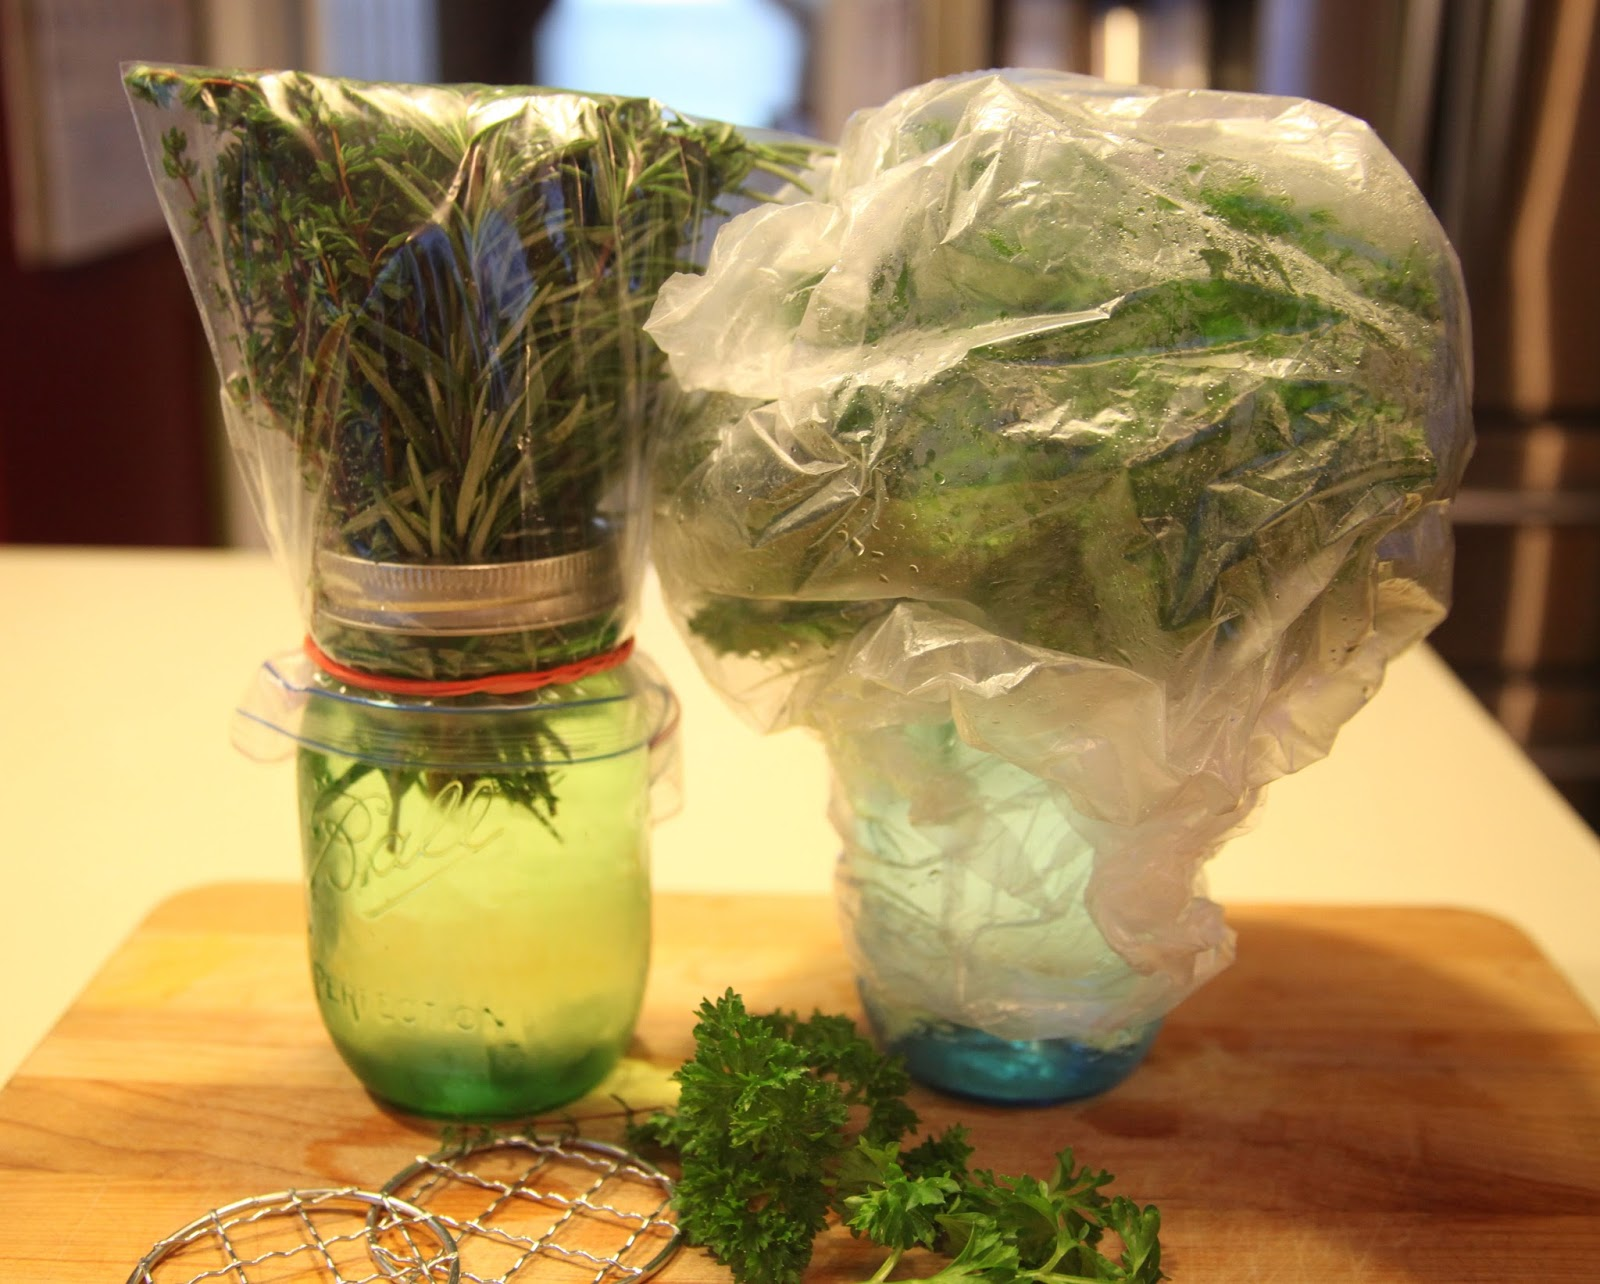 How to Store Soft, Tender Herbs